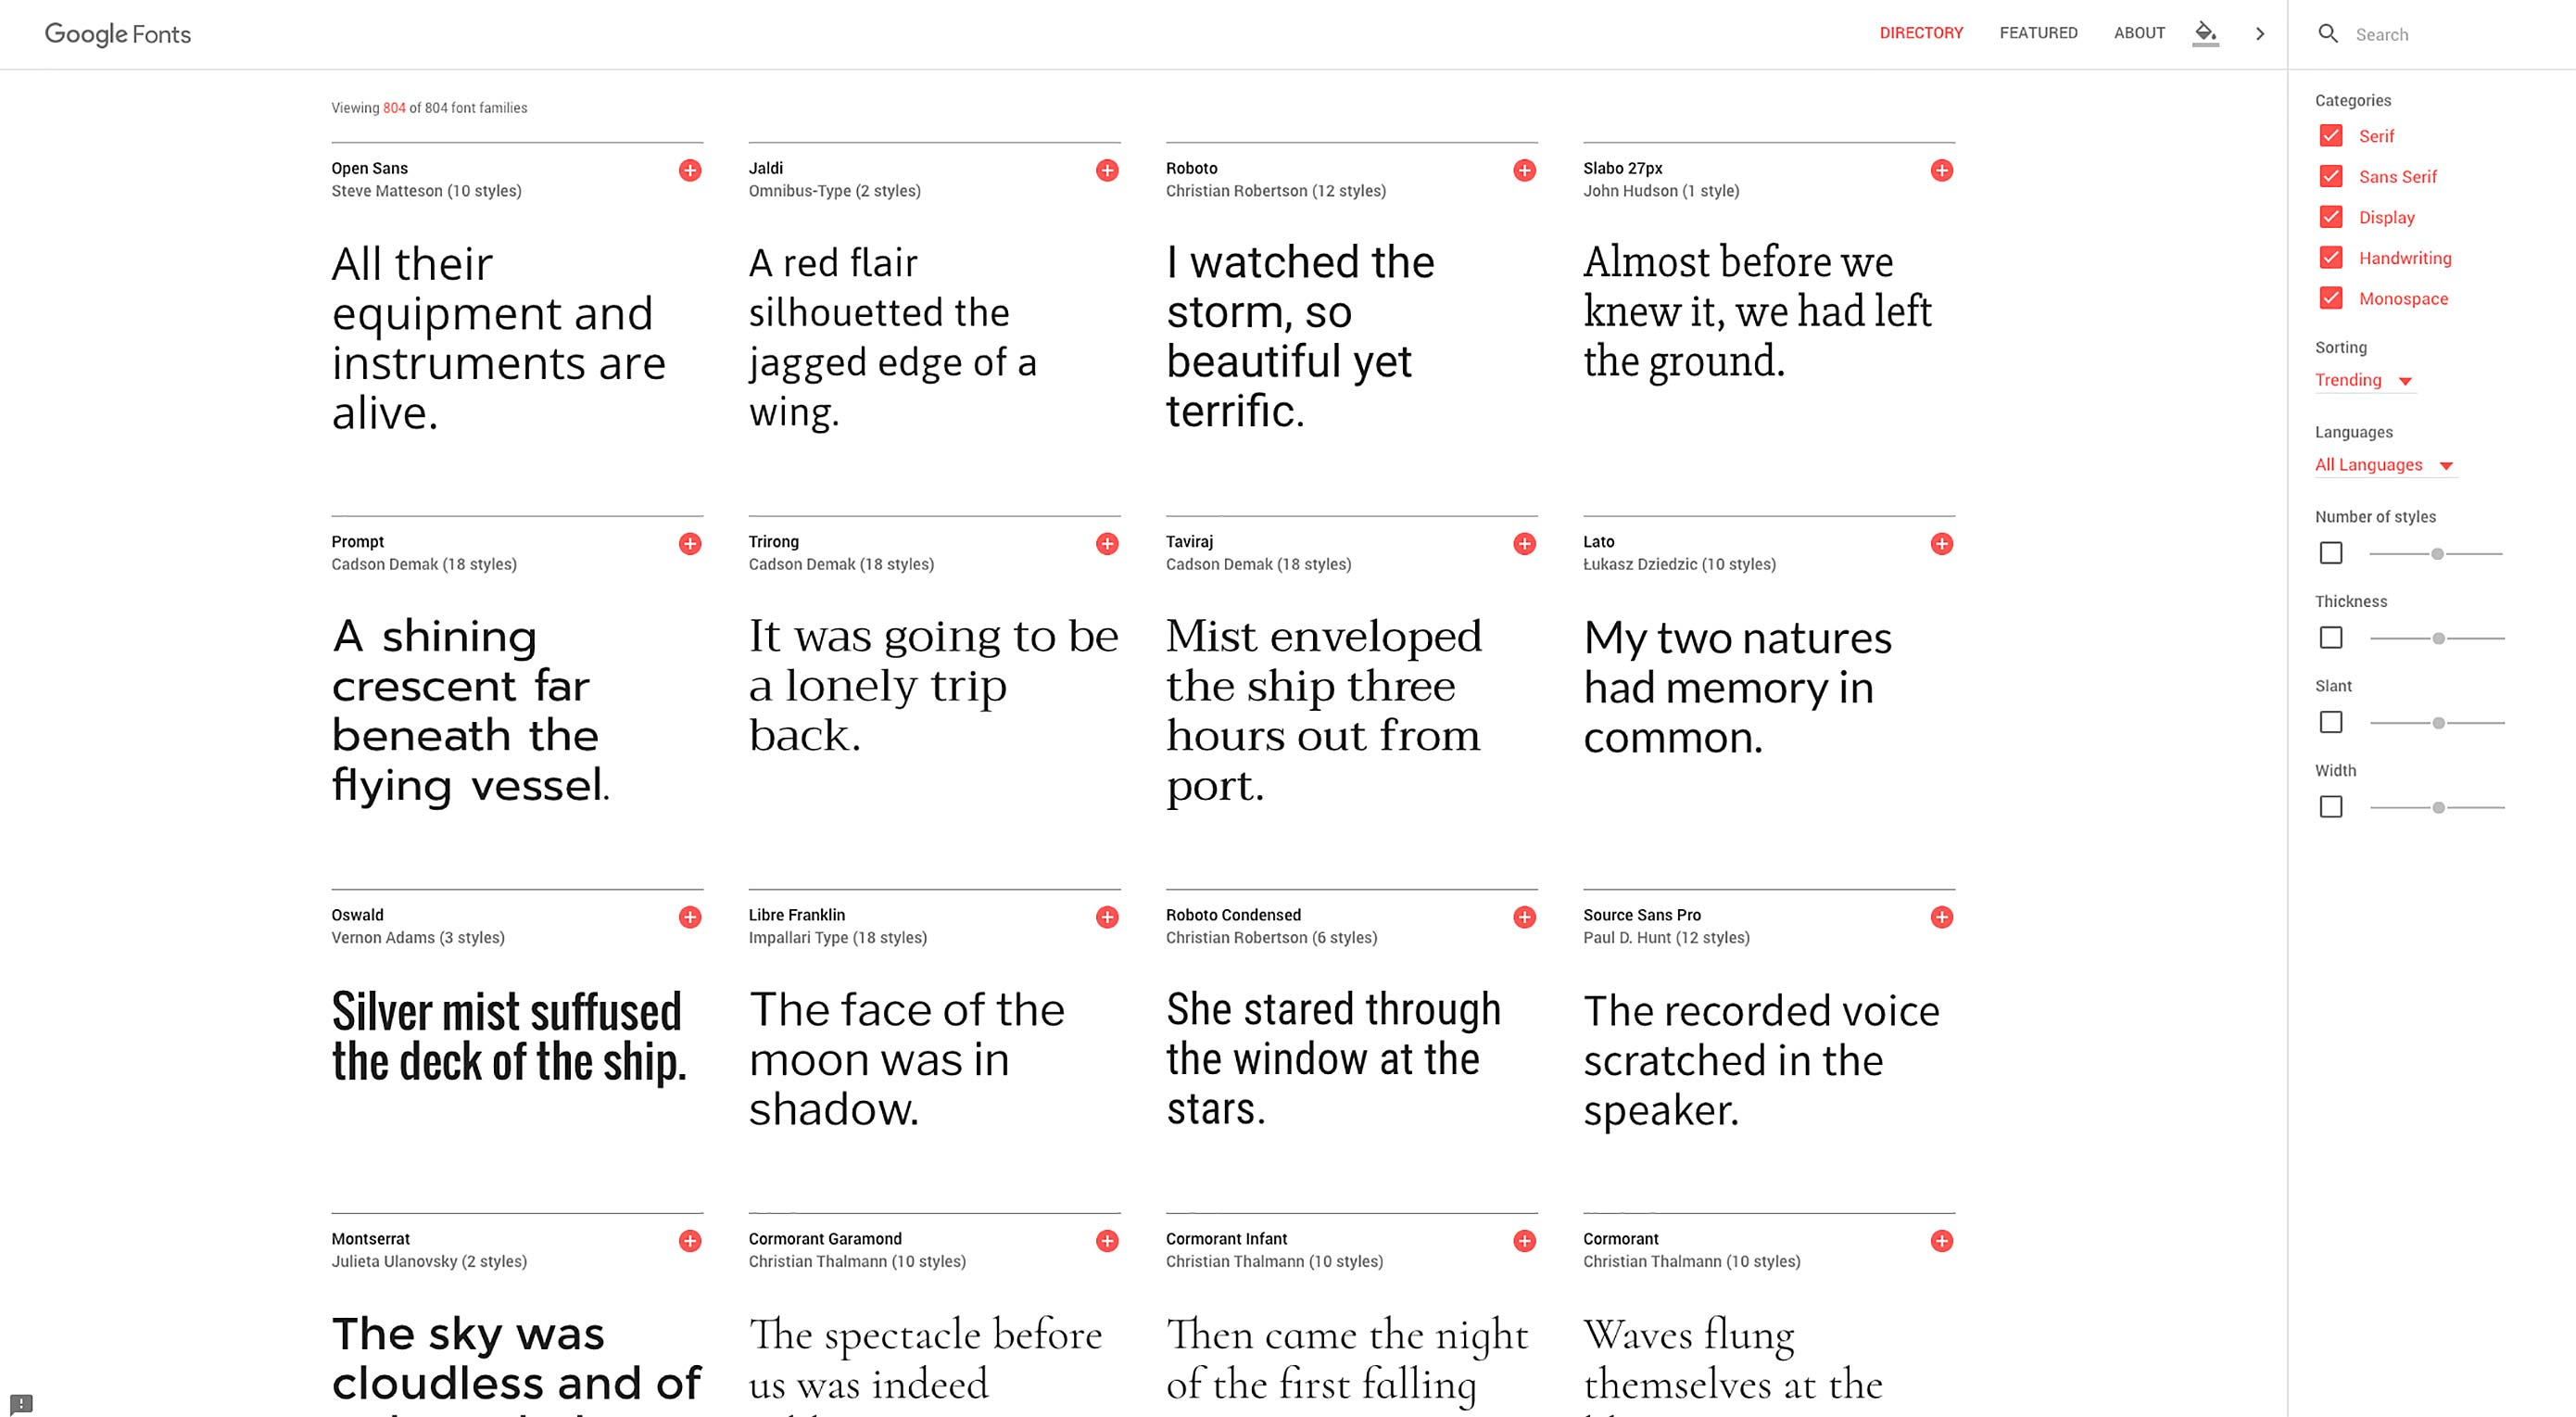 Google Fonts unveils huge redesign